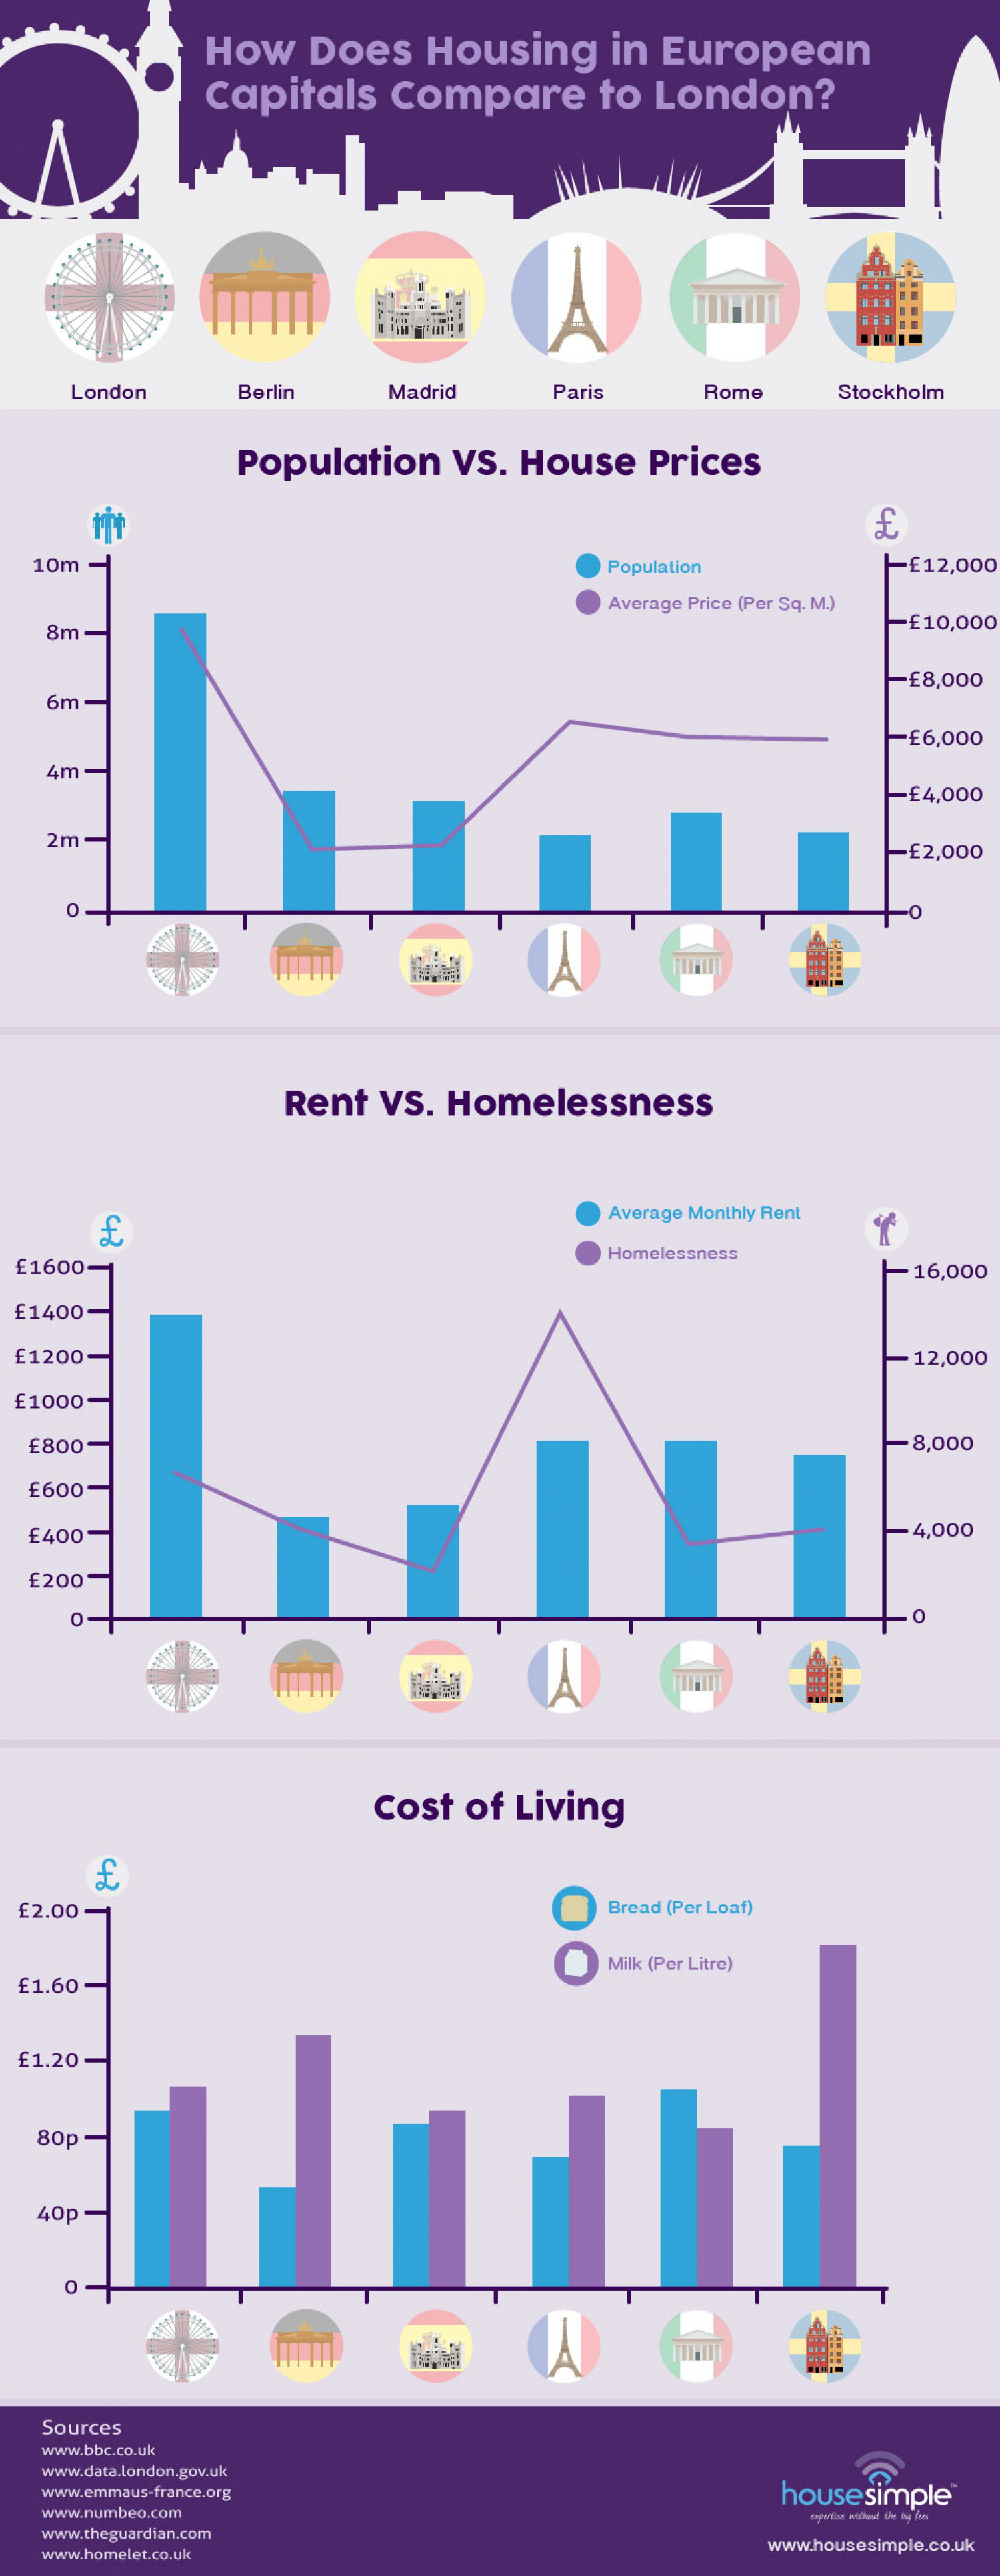 How Does Housing in European Capitals Compare to London? Infographic